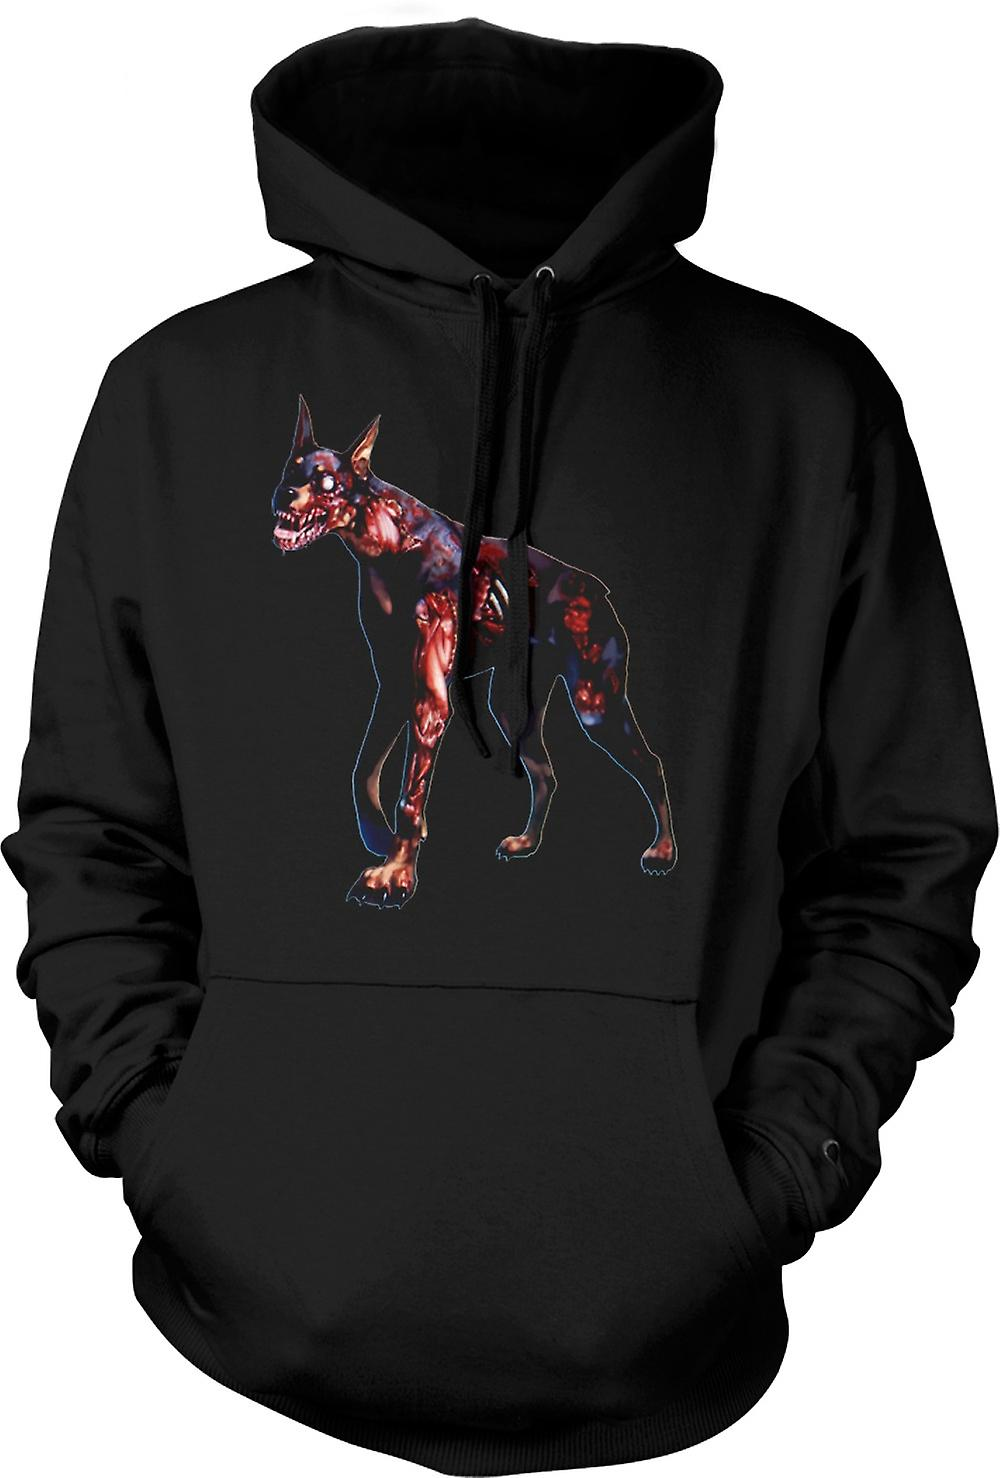 Mens Hoodie - I Love Zombie Dogs